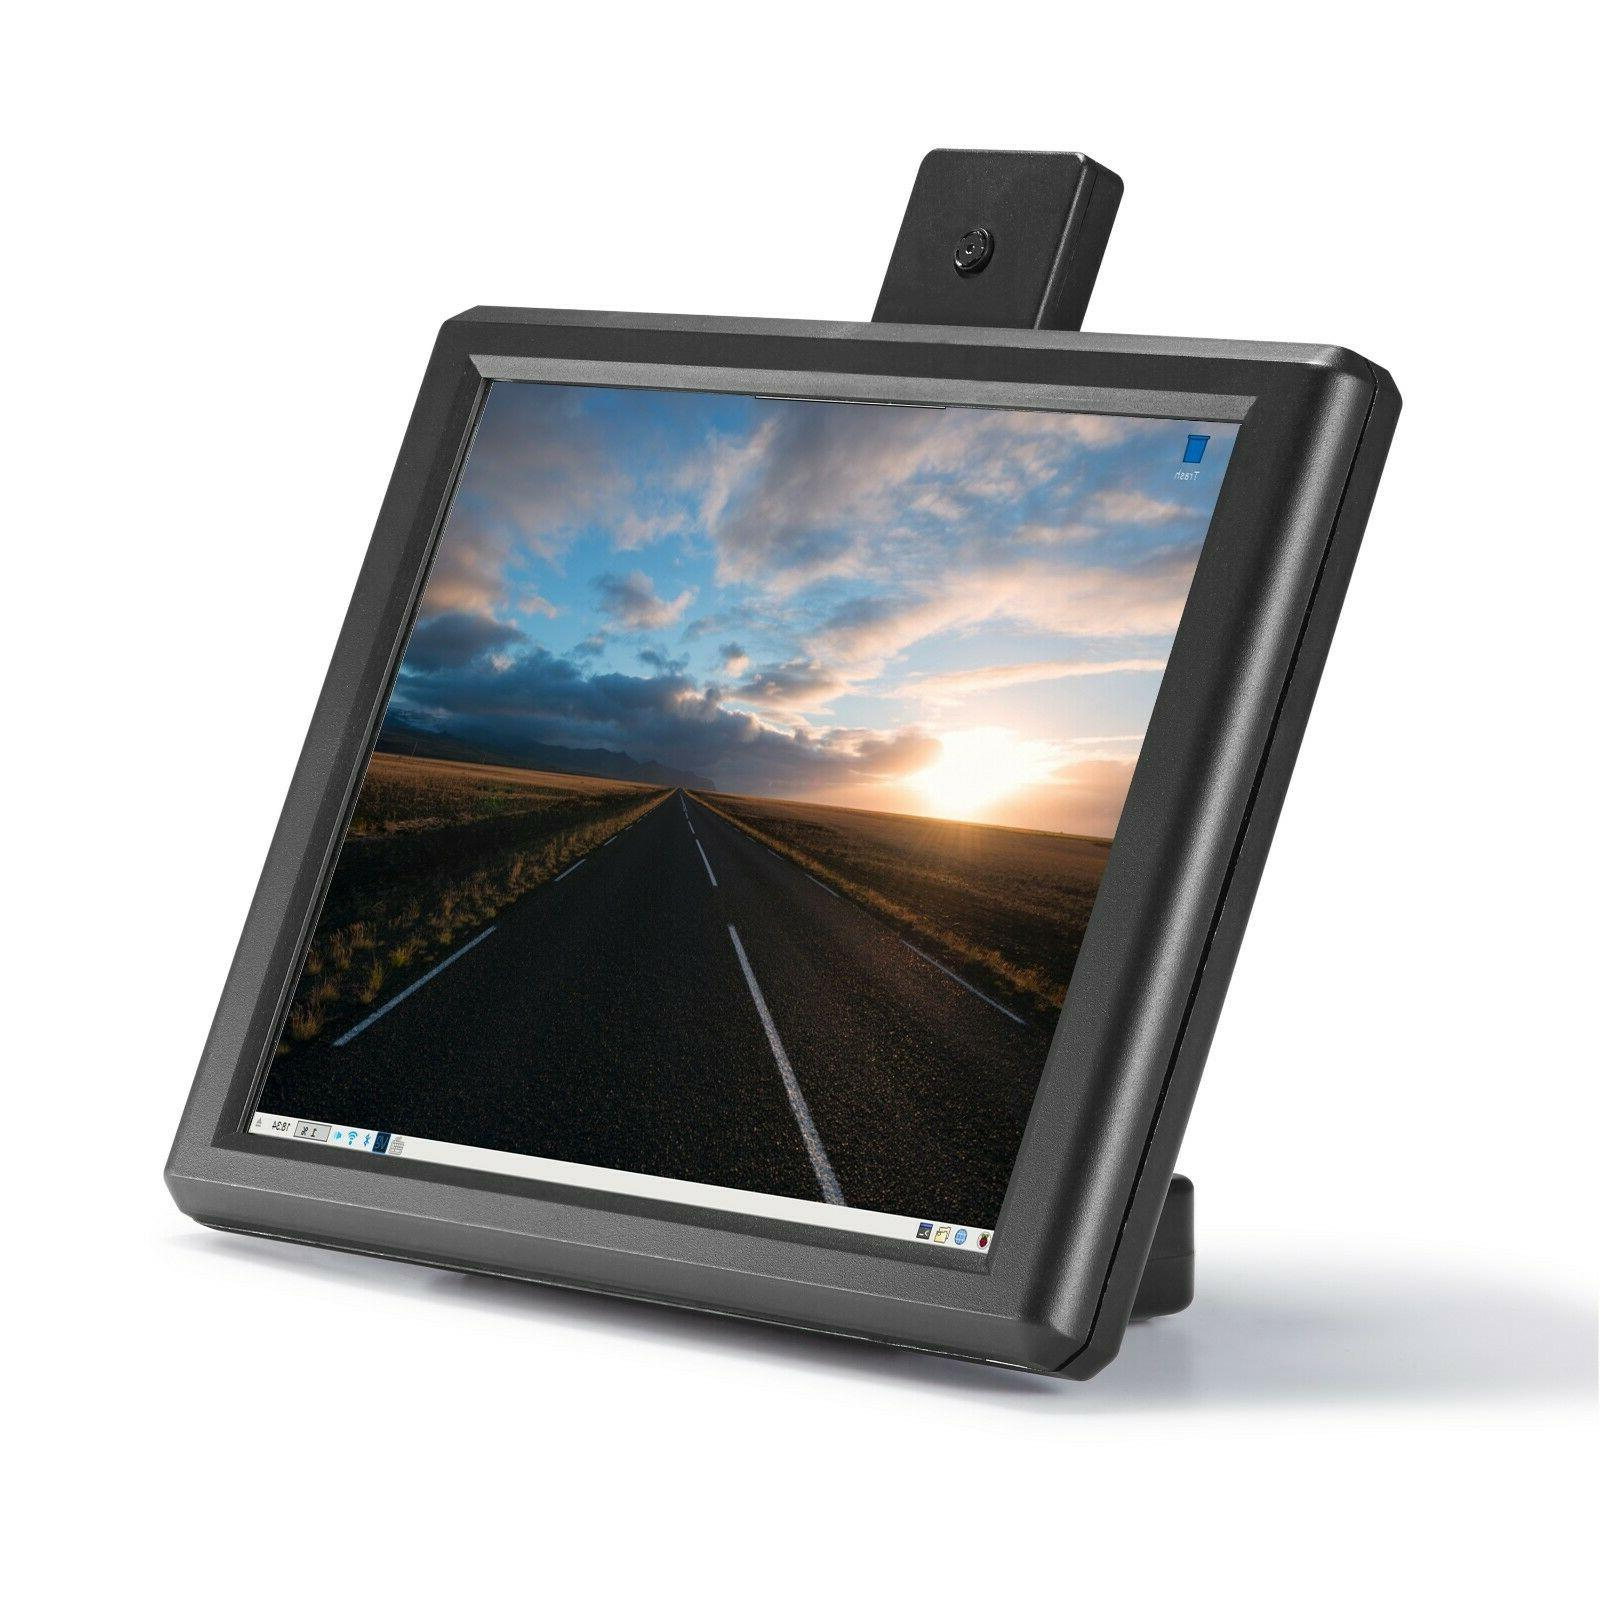 8 inch screen and stand for raspberry